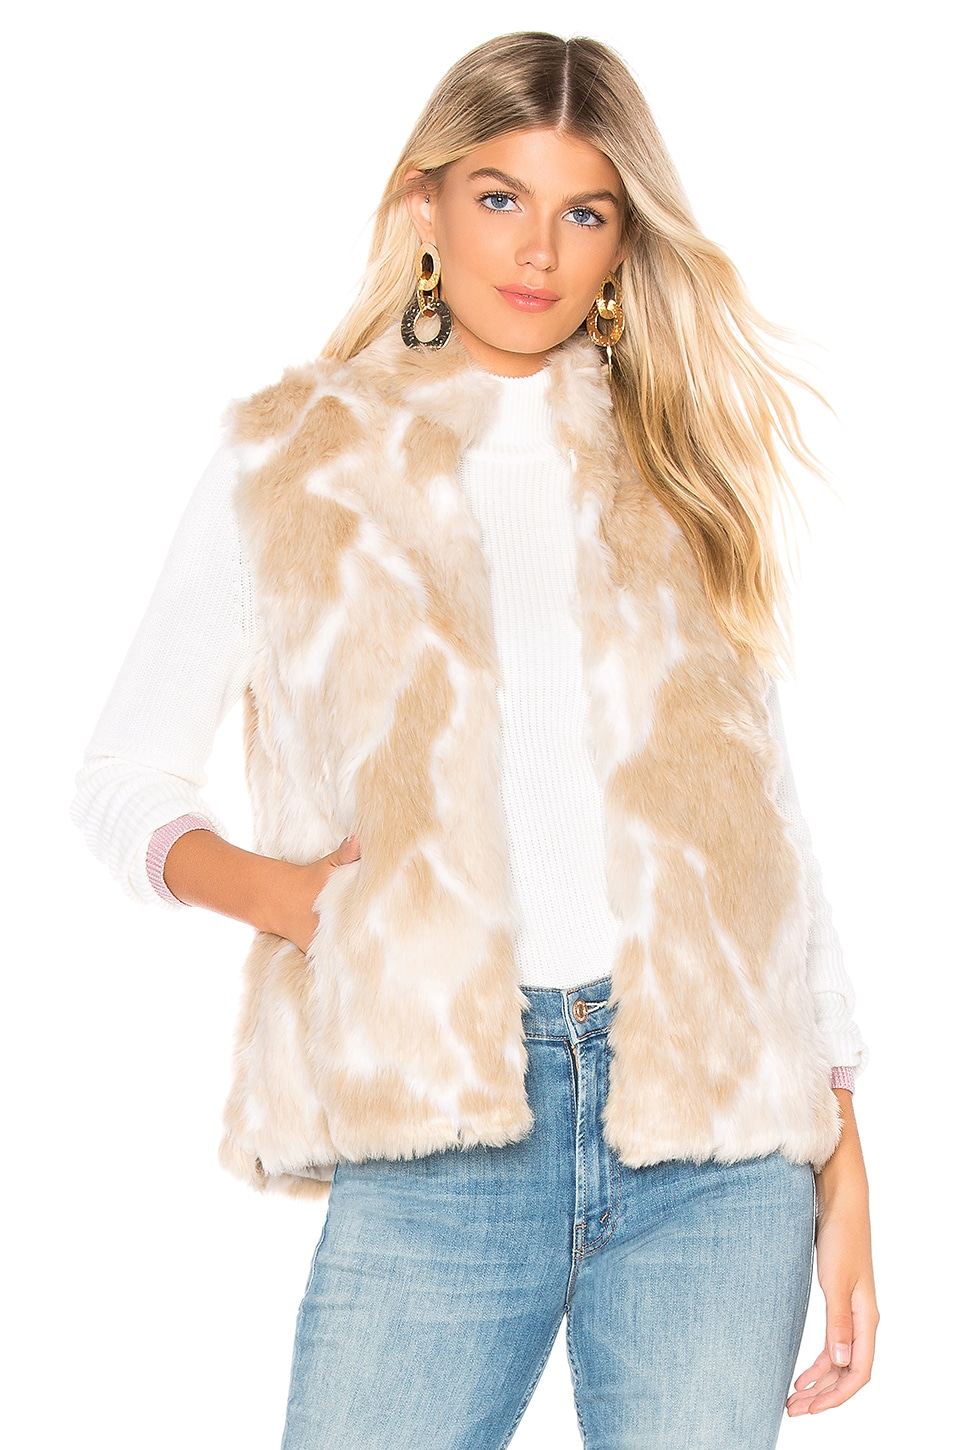 BB Dakota JACK by BB Dakota Faux Fur What Vest in Ivory